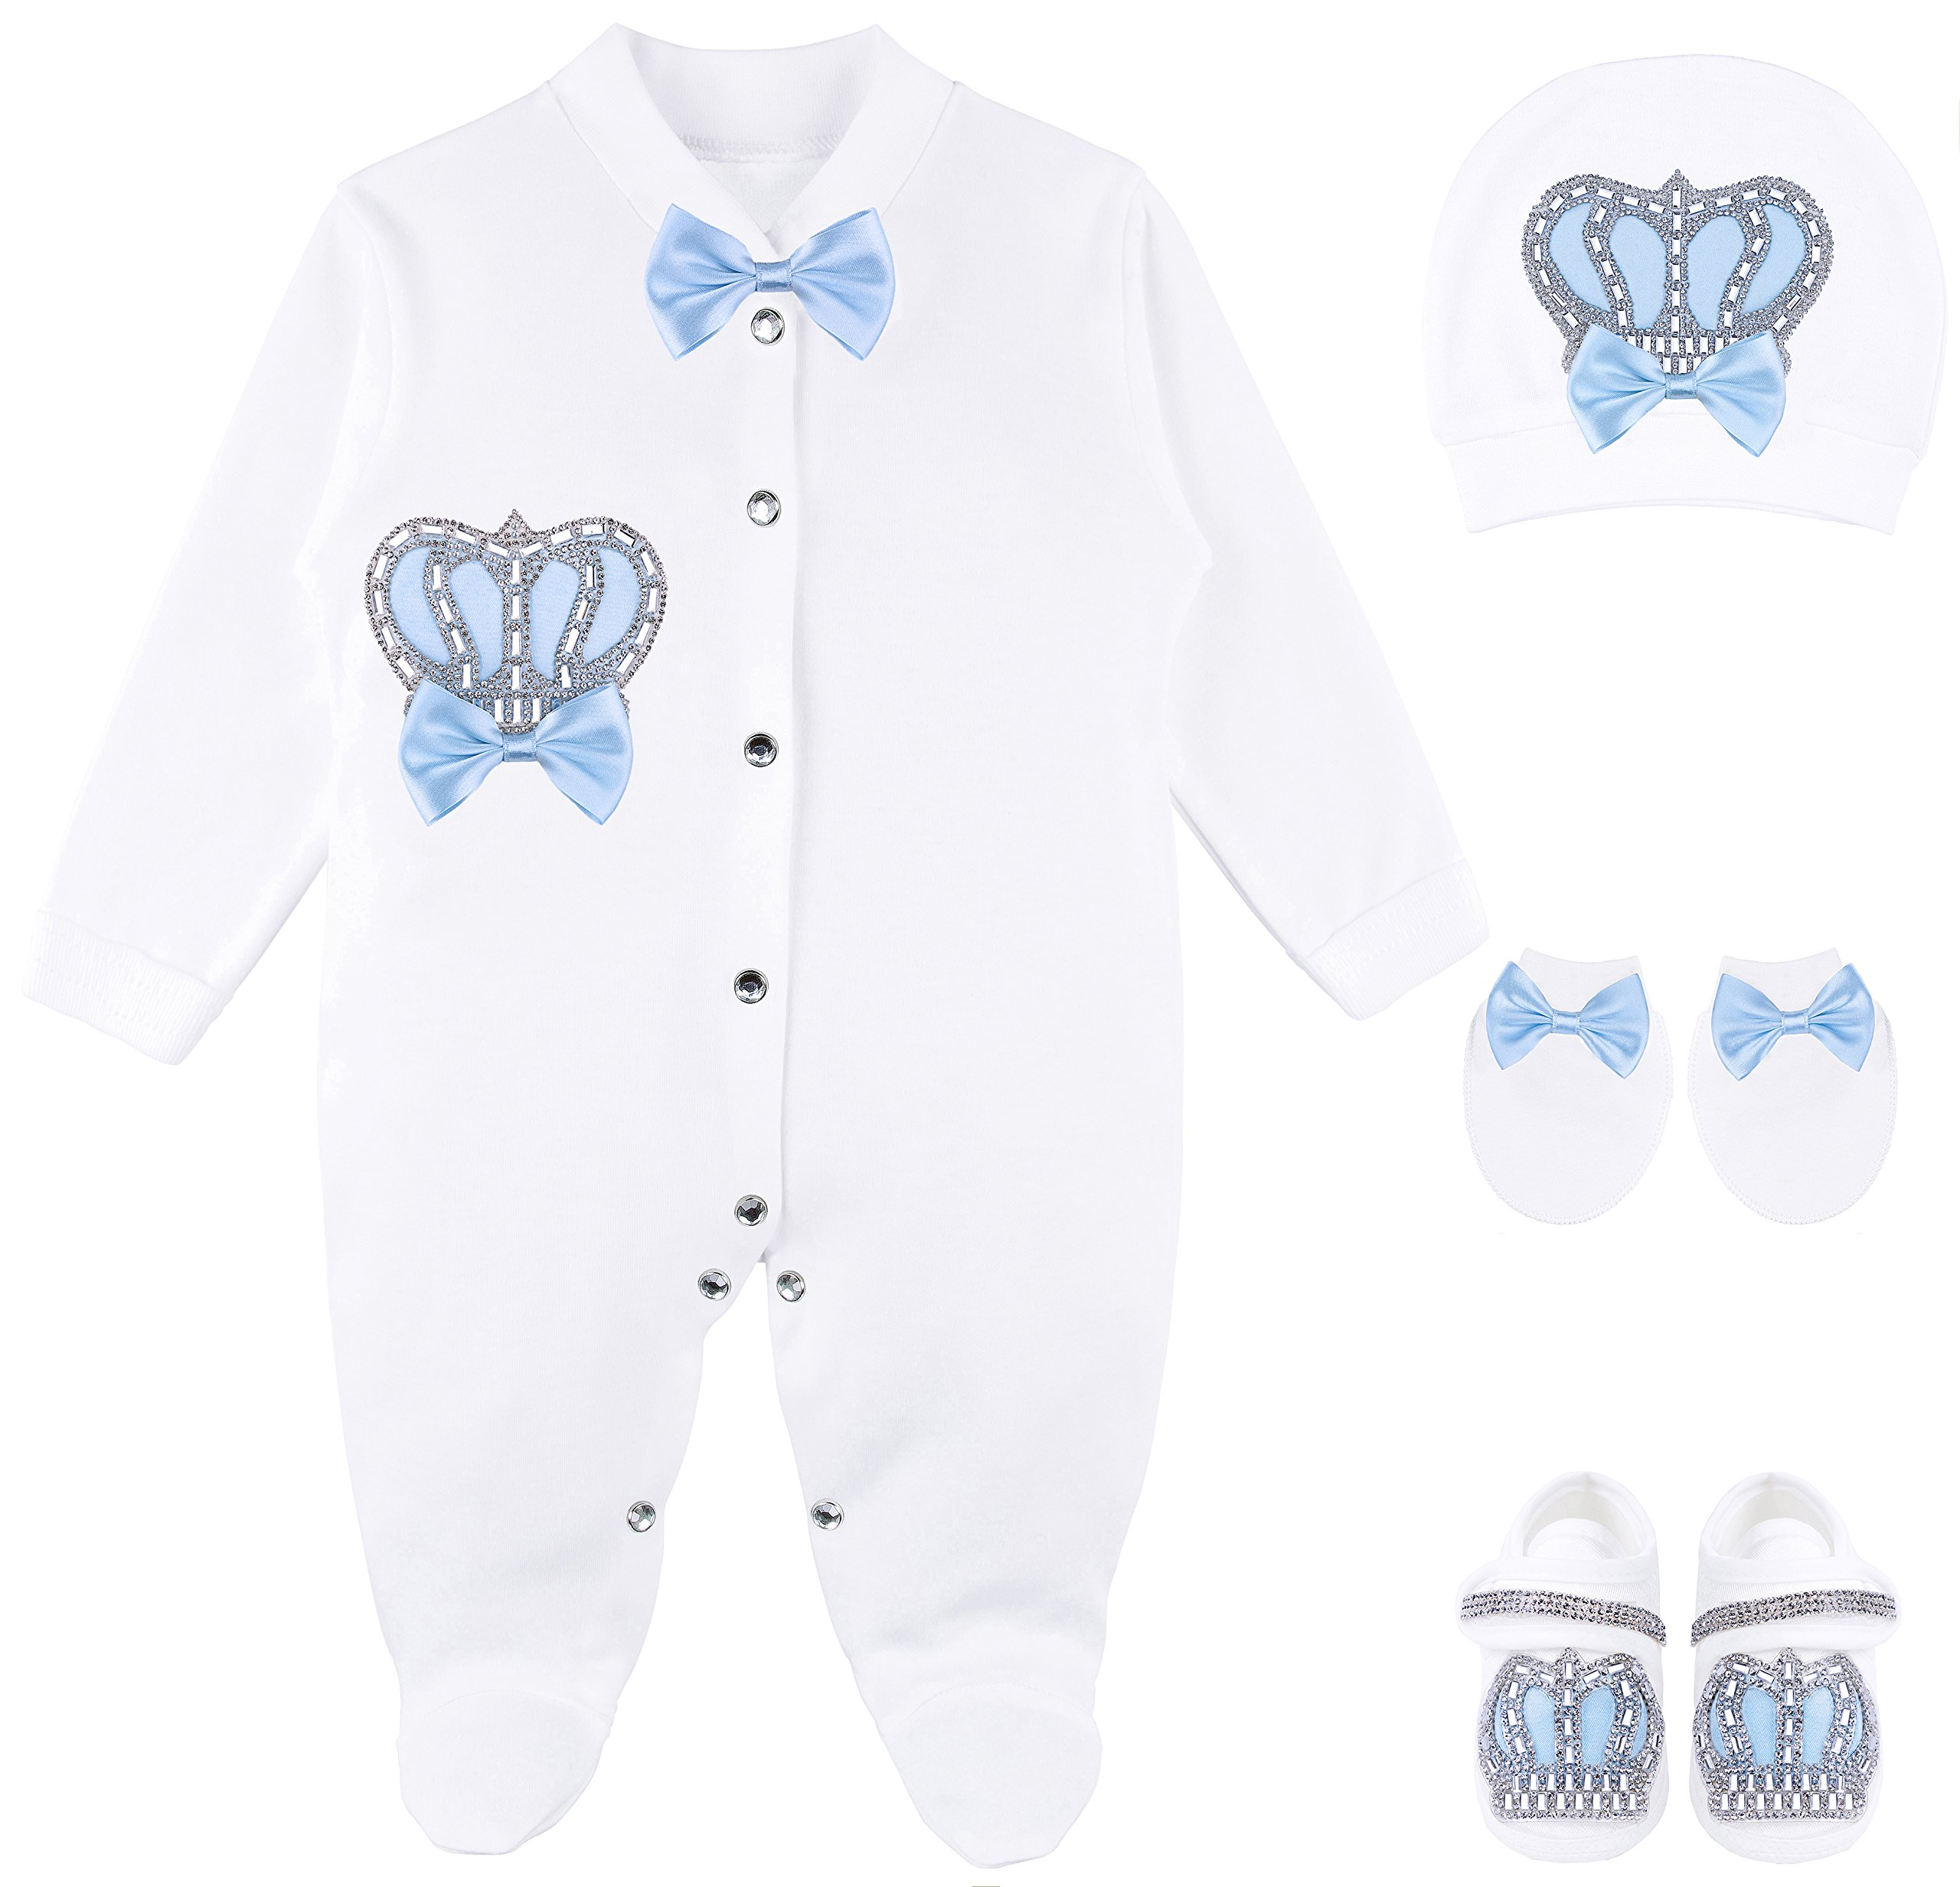 Lilax Baby Boy Jewels Crown Tuxedo Outfit Layette 5 Piece Gift Set 0-3 Months